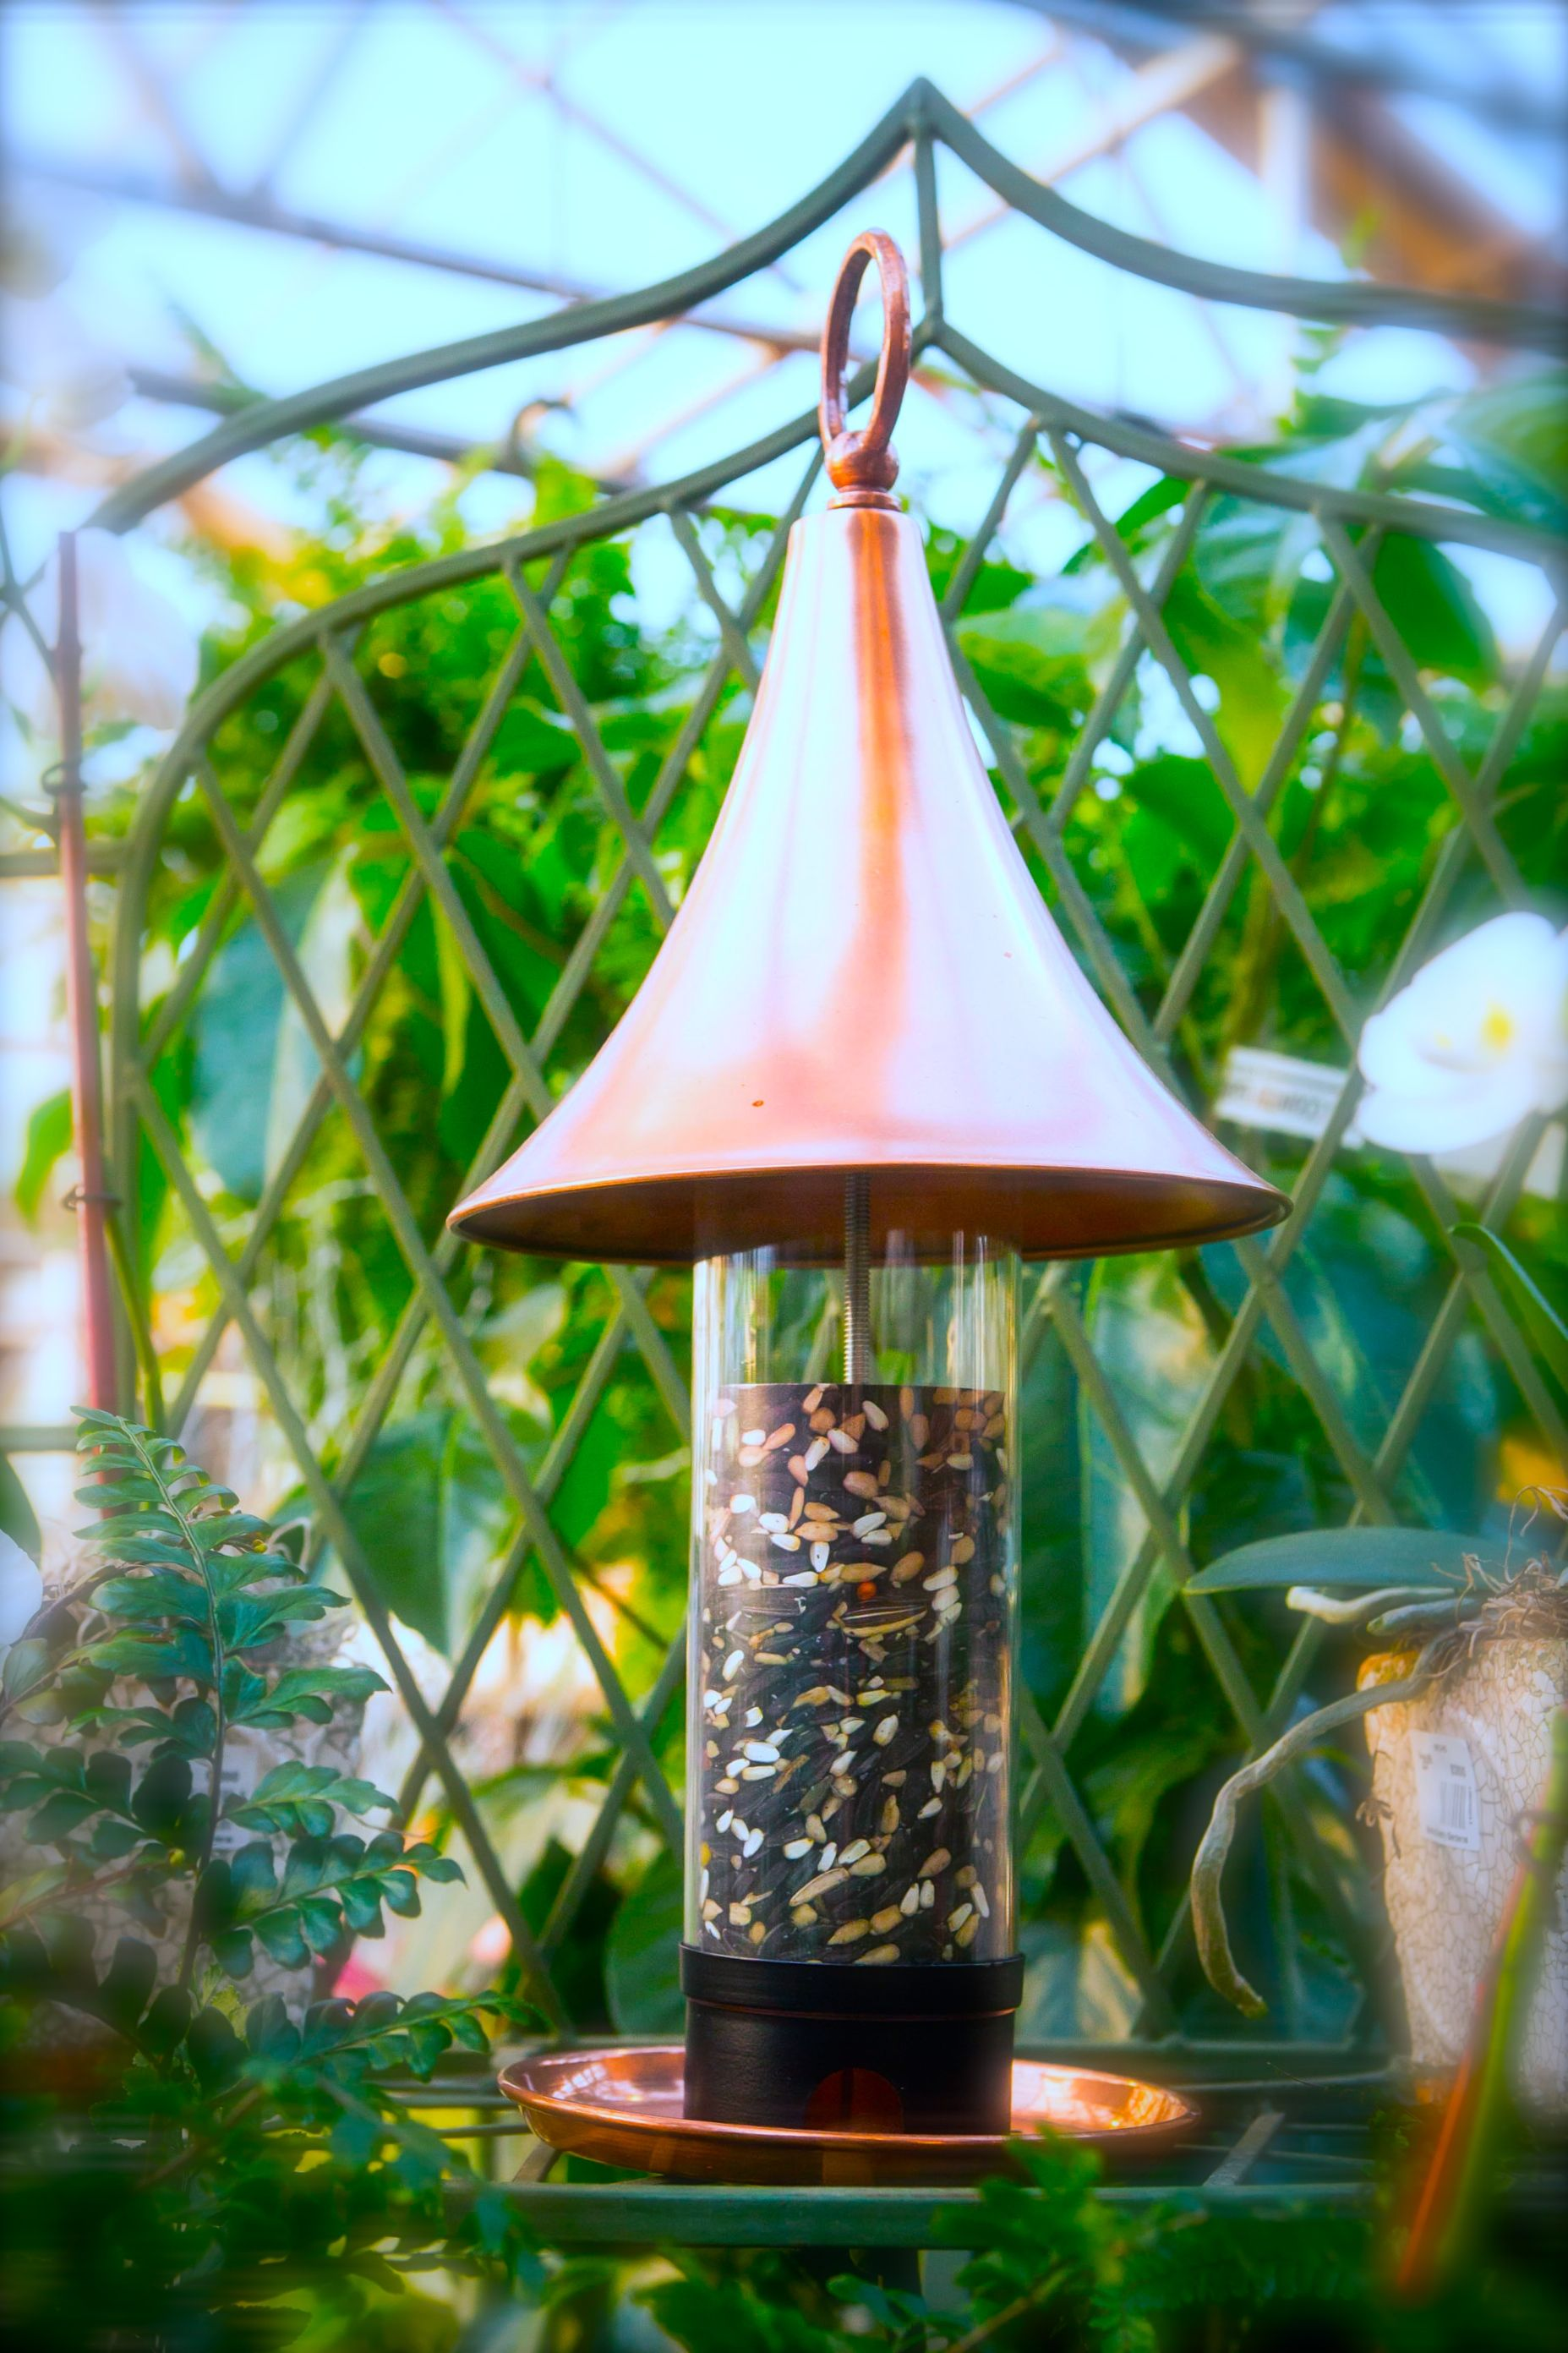 Keep Track Of When You Need To Refill Your Bird Feeder With This See Through  Feeder, Available At Bucks Country Gardens, Doylestown PA. #birds